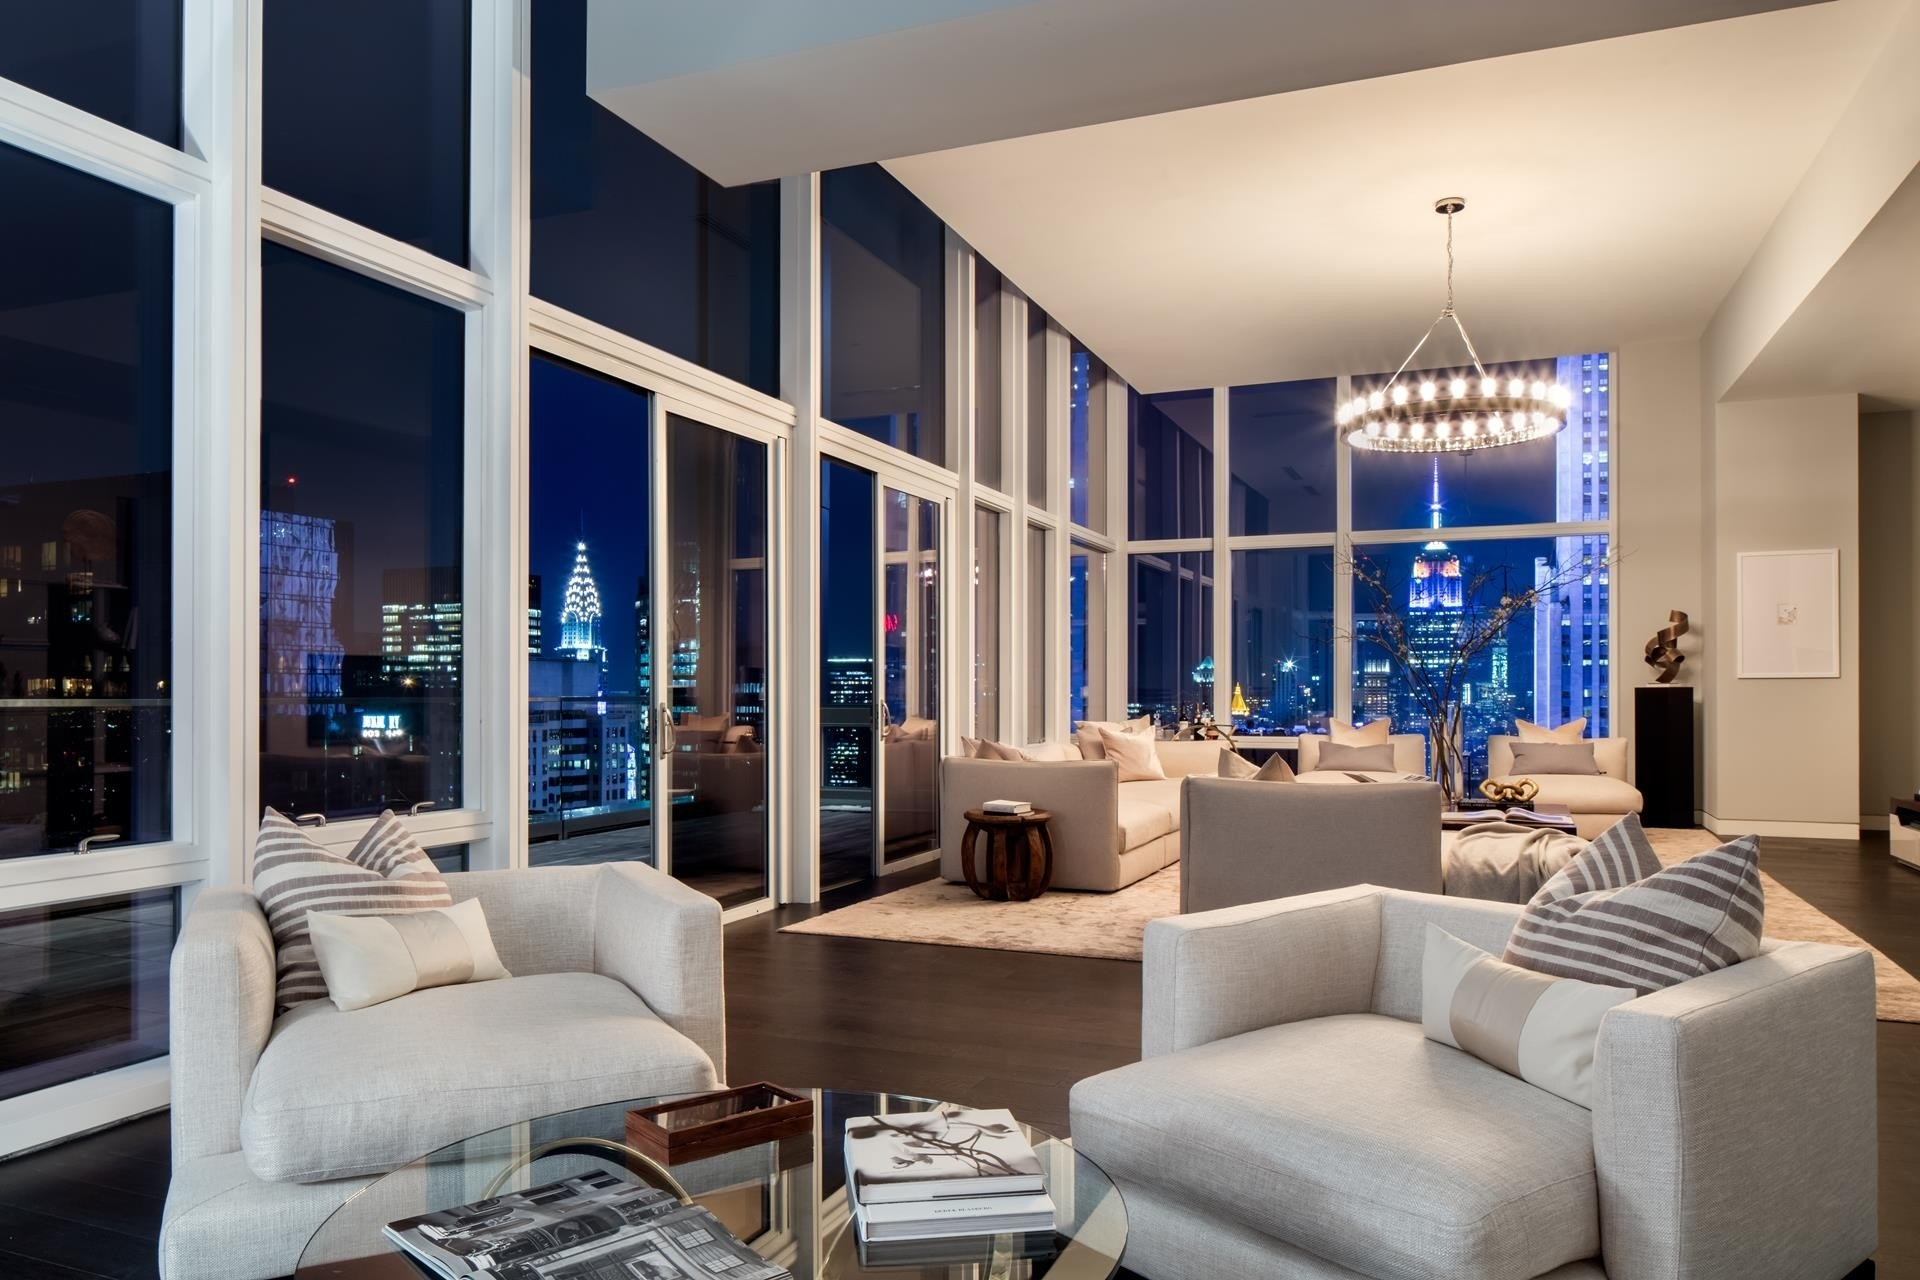 3. Condominiums for Sale at BACCARAT HOTEL & RESIDENCES, 20 West 53rd St, PH48/49 Midtown West, New York, NY 10019